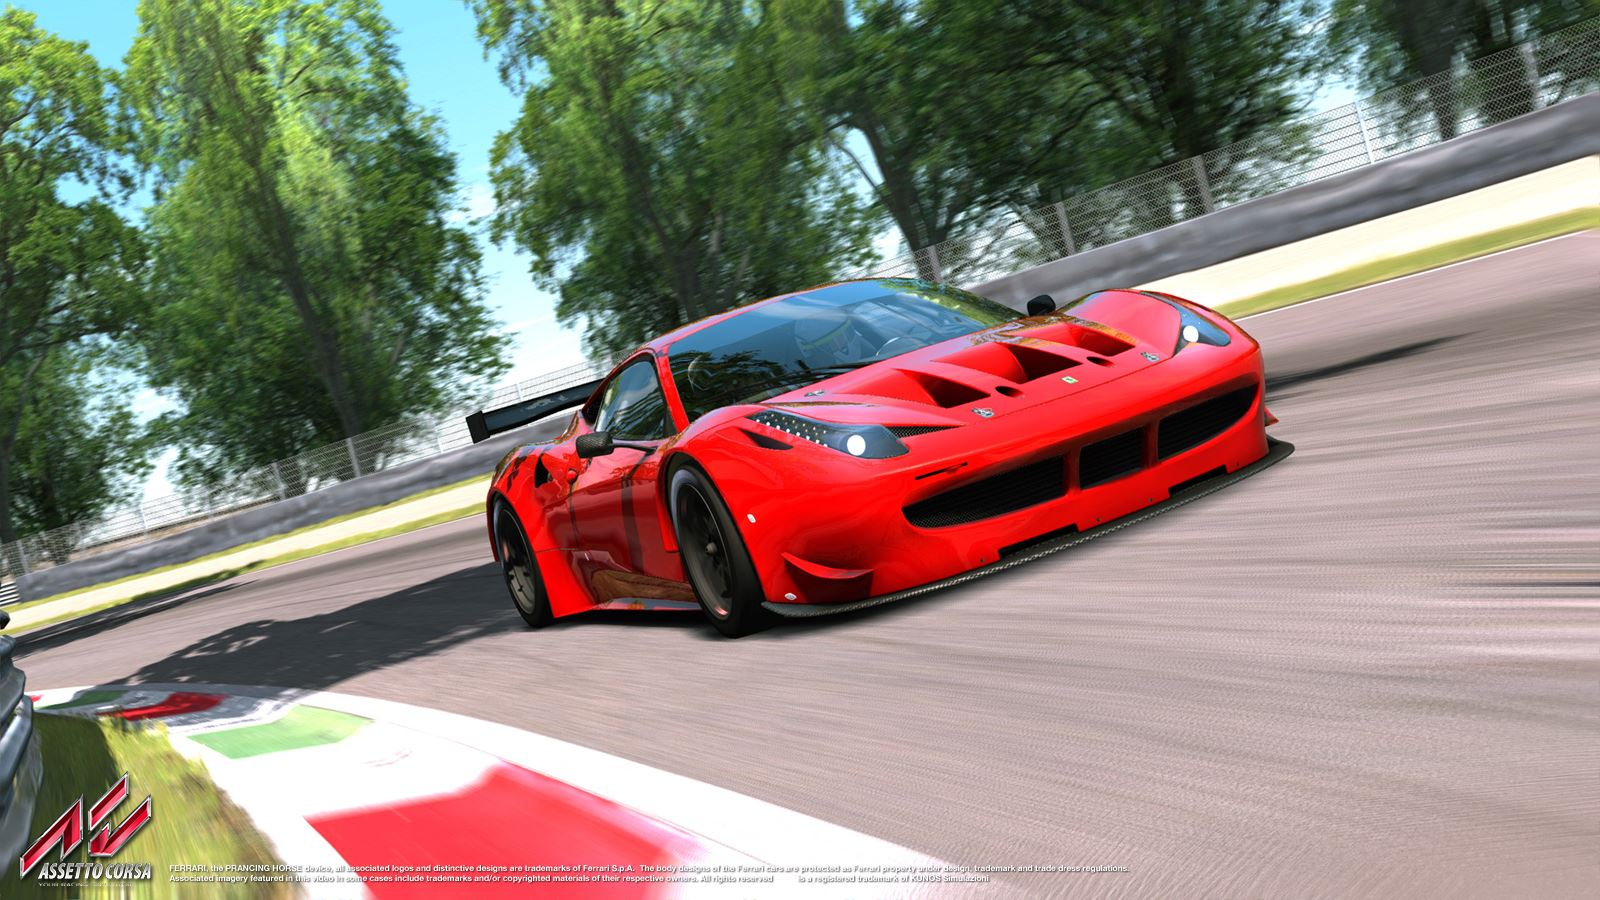 video-assetto-corsa-ferrari-458-gt2-gameplay (1)